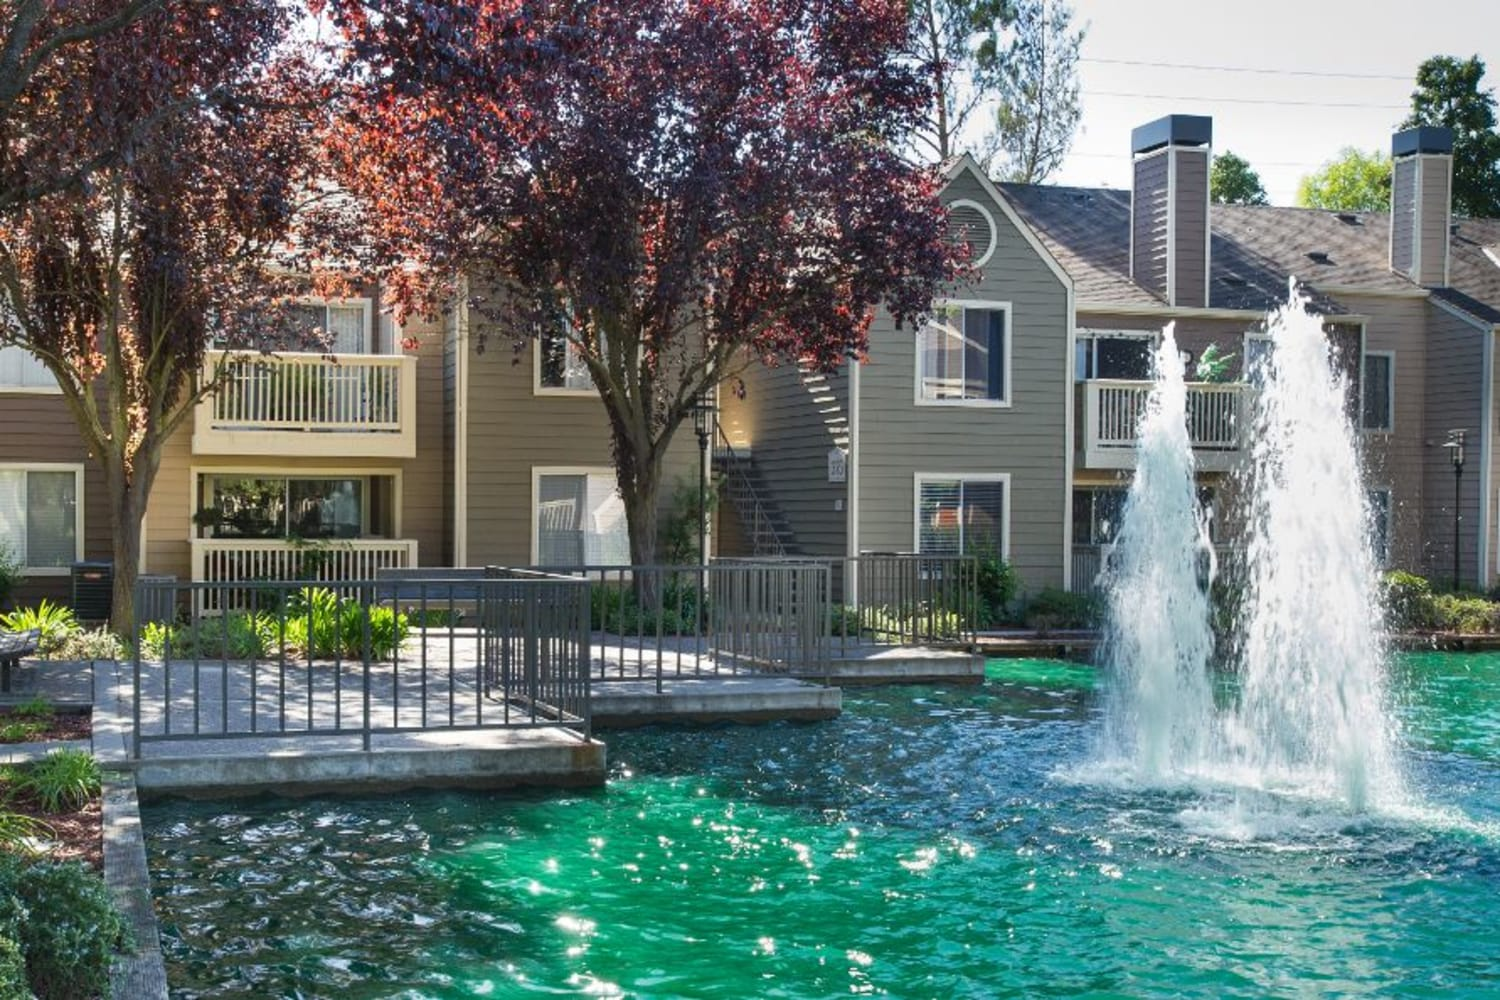 Enjoy walks around the beautiful grounds at Bridges at San Ramon in San Ramon, California